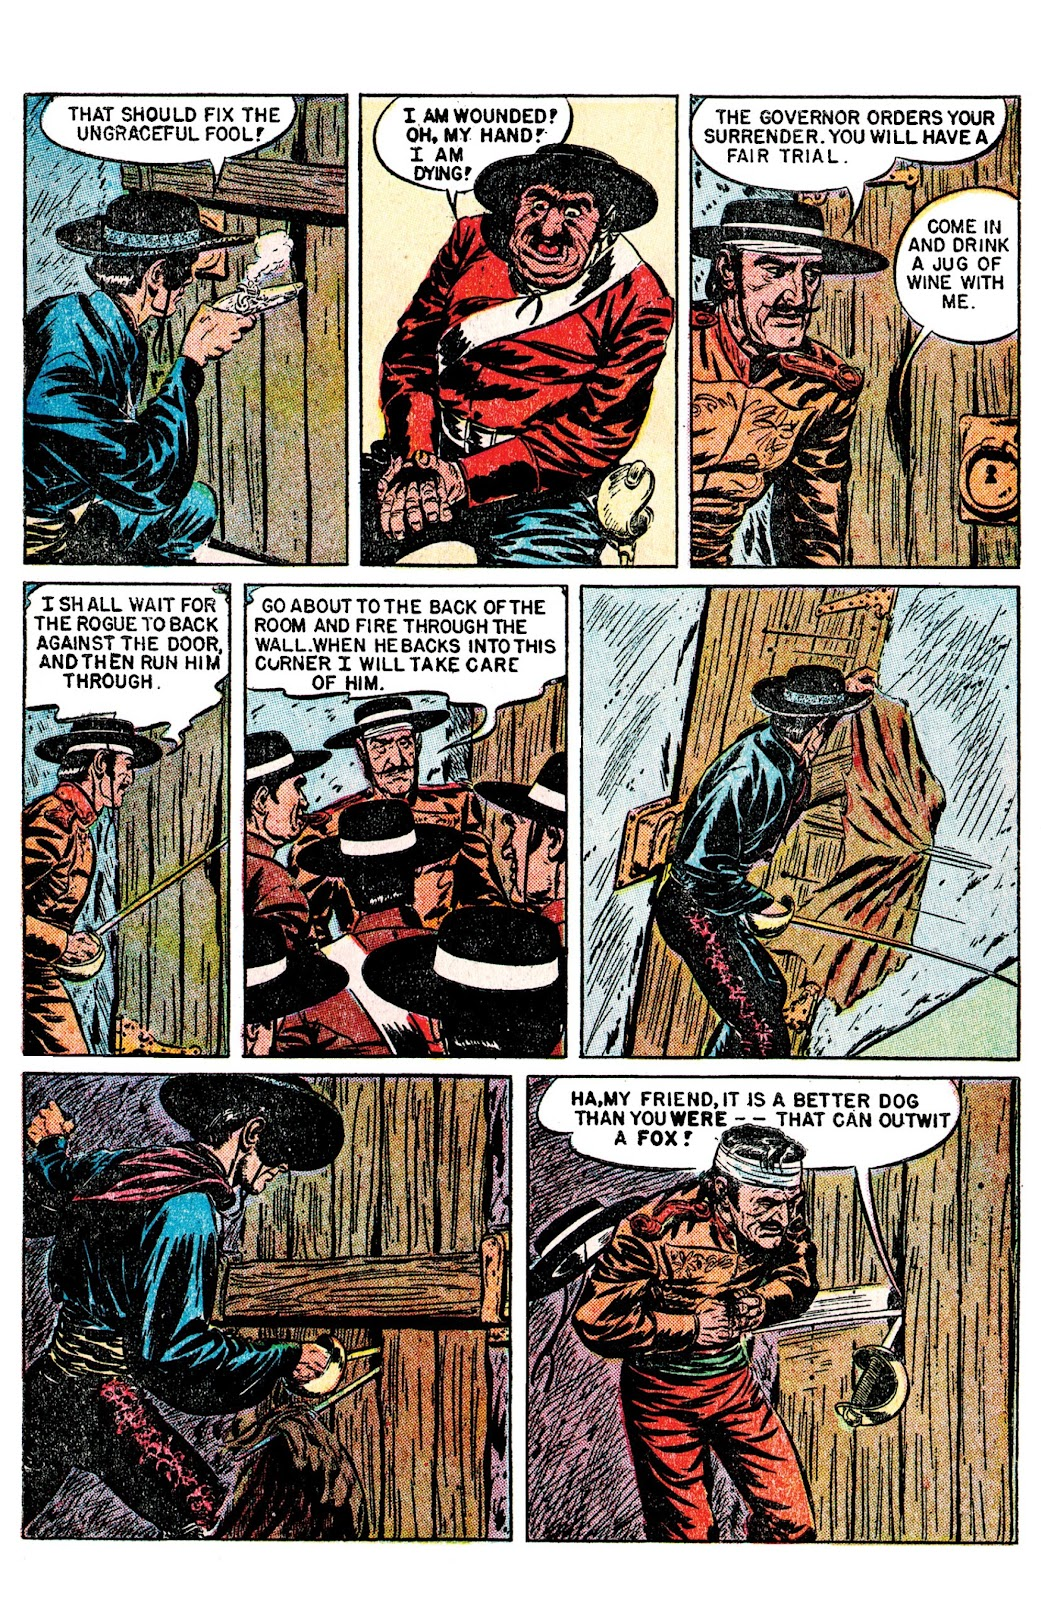 Read online AM Archives: The Mark of Zorro #1 1949 Dell Edition comic -  Issue #1 1949 Dell Edition Full - 31